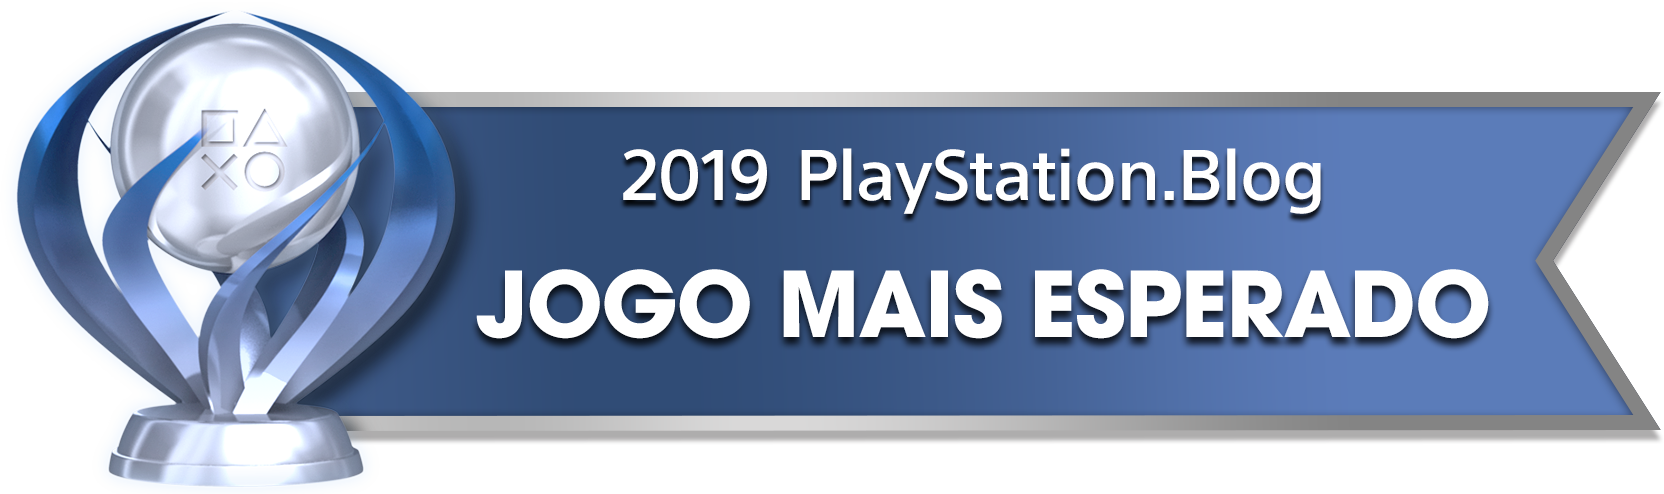 PS Blog Game of the Year 2019 - Most Anticipated - 1 - Platinum